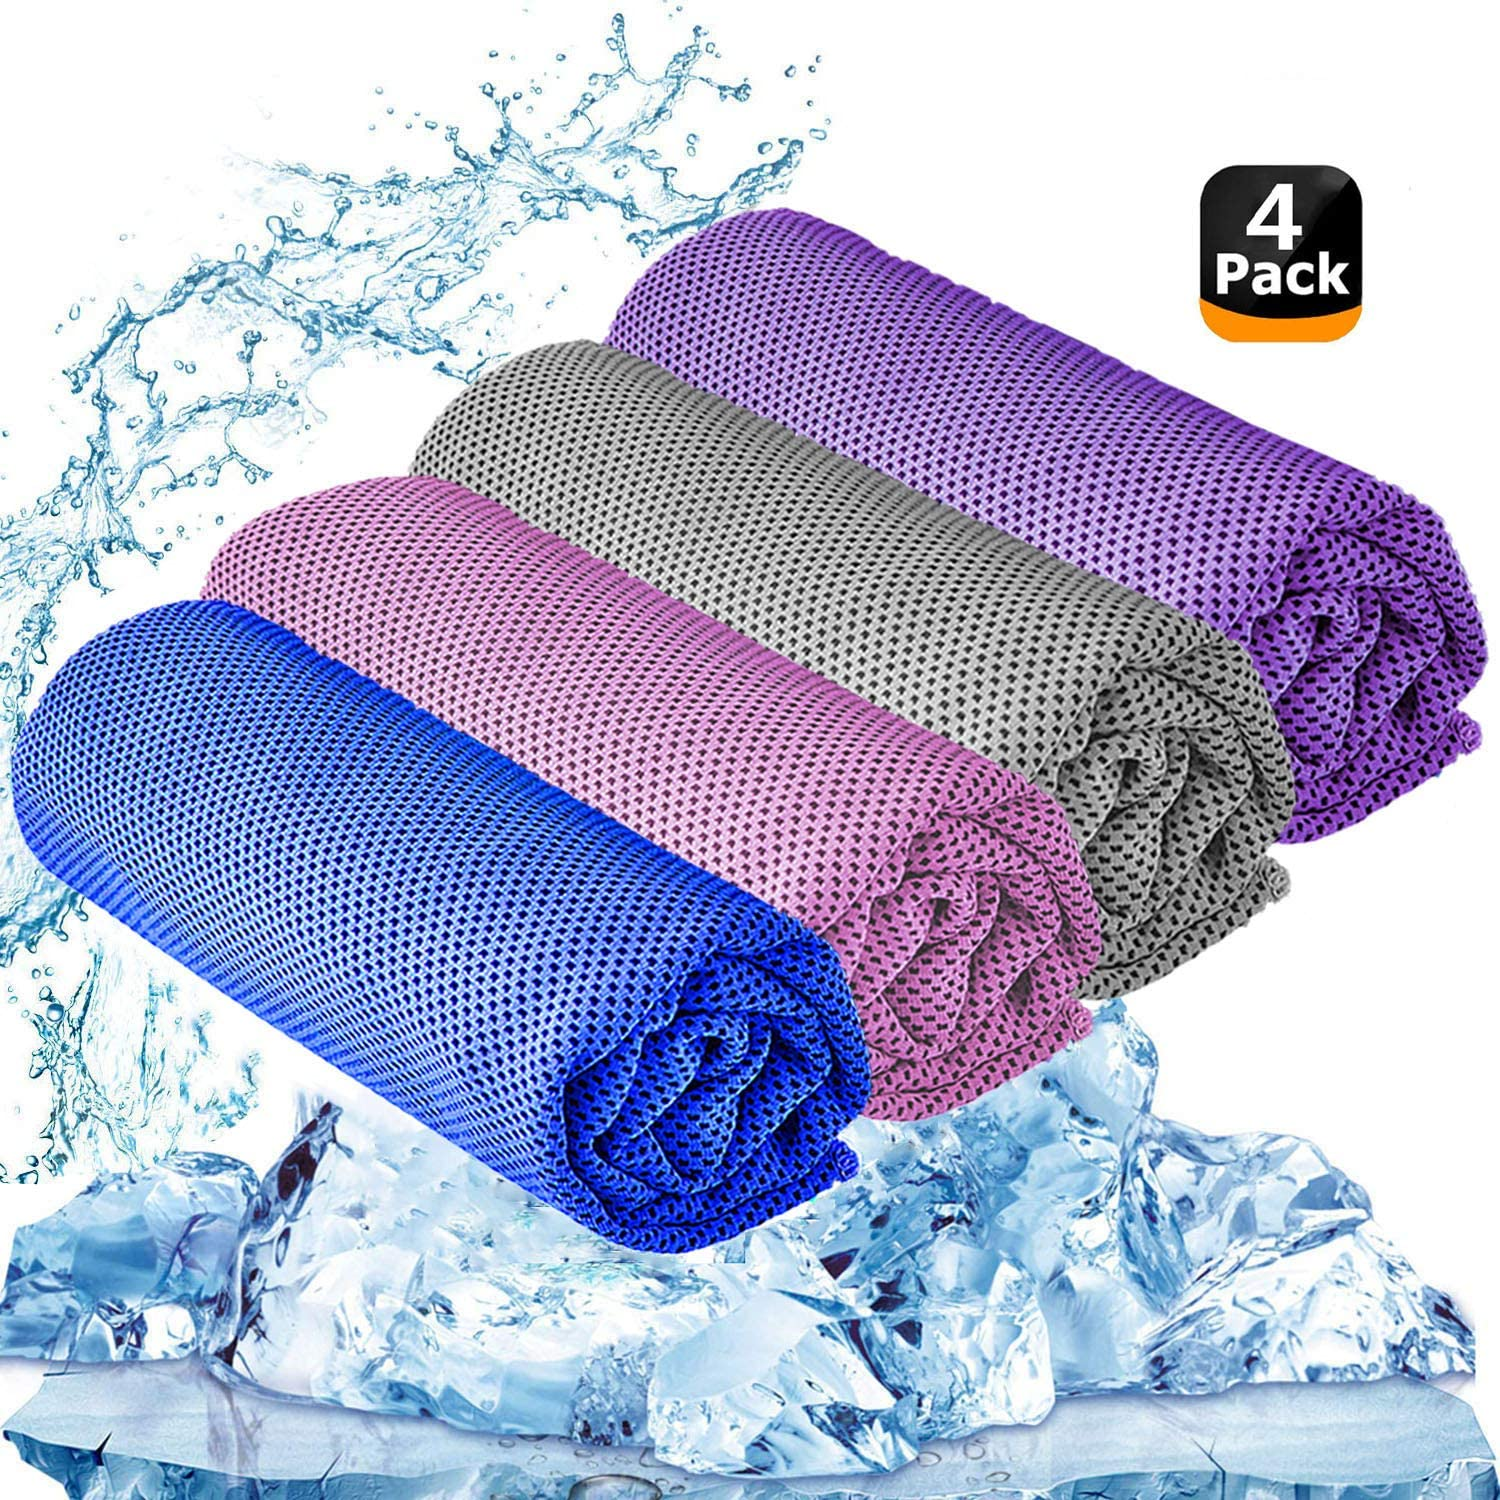 "YQXCC Cooling Towel 3 Pcs (47""x12"") Microfiber Towel for Instant Cooling Relief, Cool Cold Towel for Yoga Golf Travel Gym Sports Camping Football & Outdoor Sports (Pink/Purple/Light Gray/Dark Blue)"